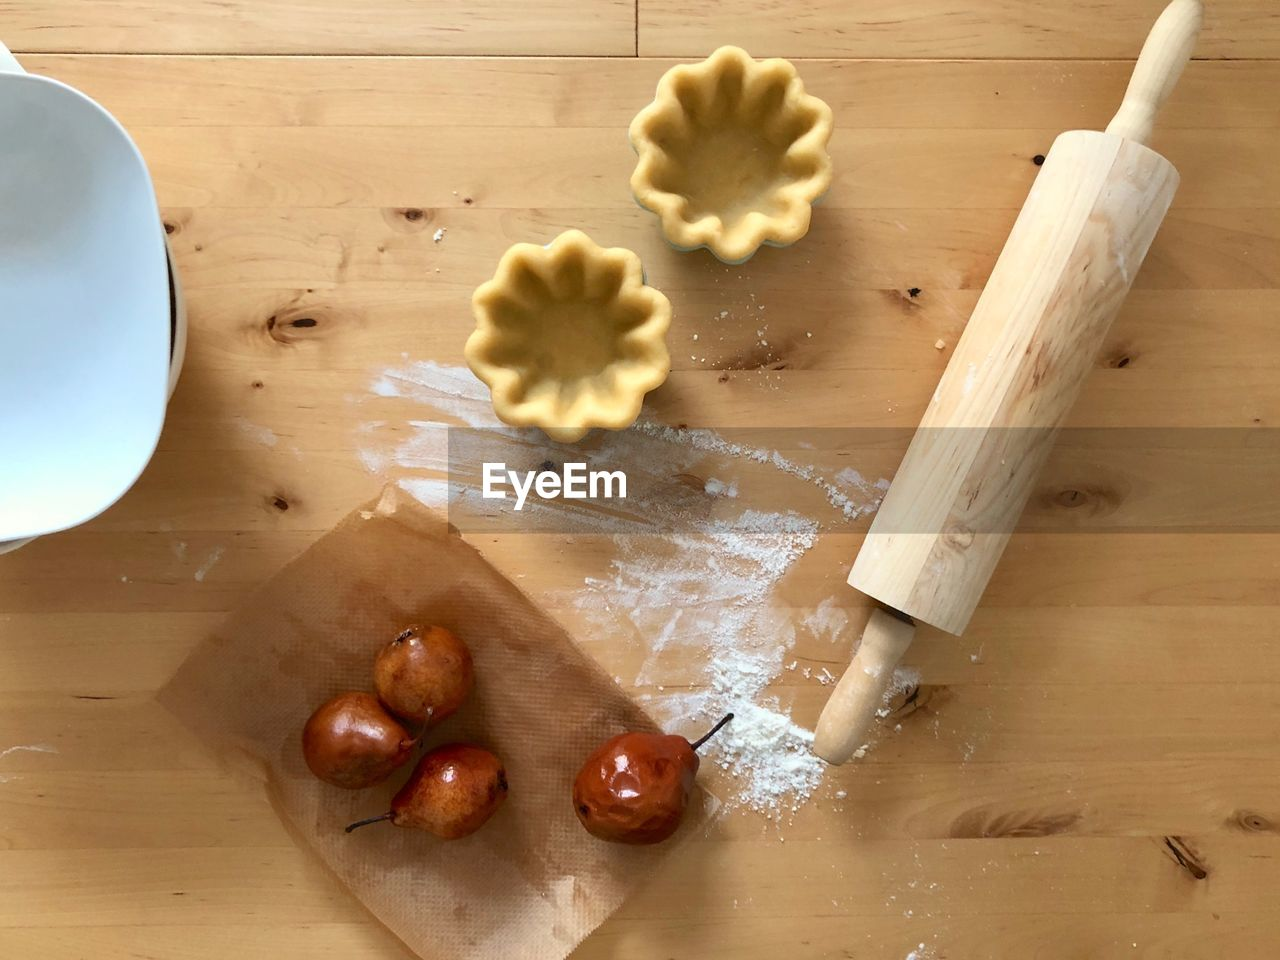 food, food and drink, indoors, freshness, still life, wood - material, table, high angle view, preparation, kitchen utensil, cutting board, flour, no people, preparing food, dough, close-up, wellbeing, rolling pin, raw food, pasta